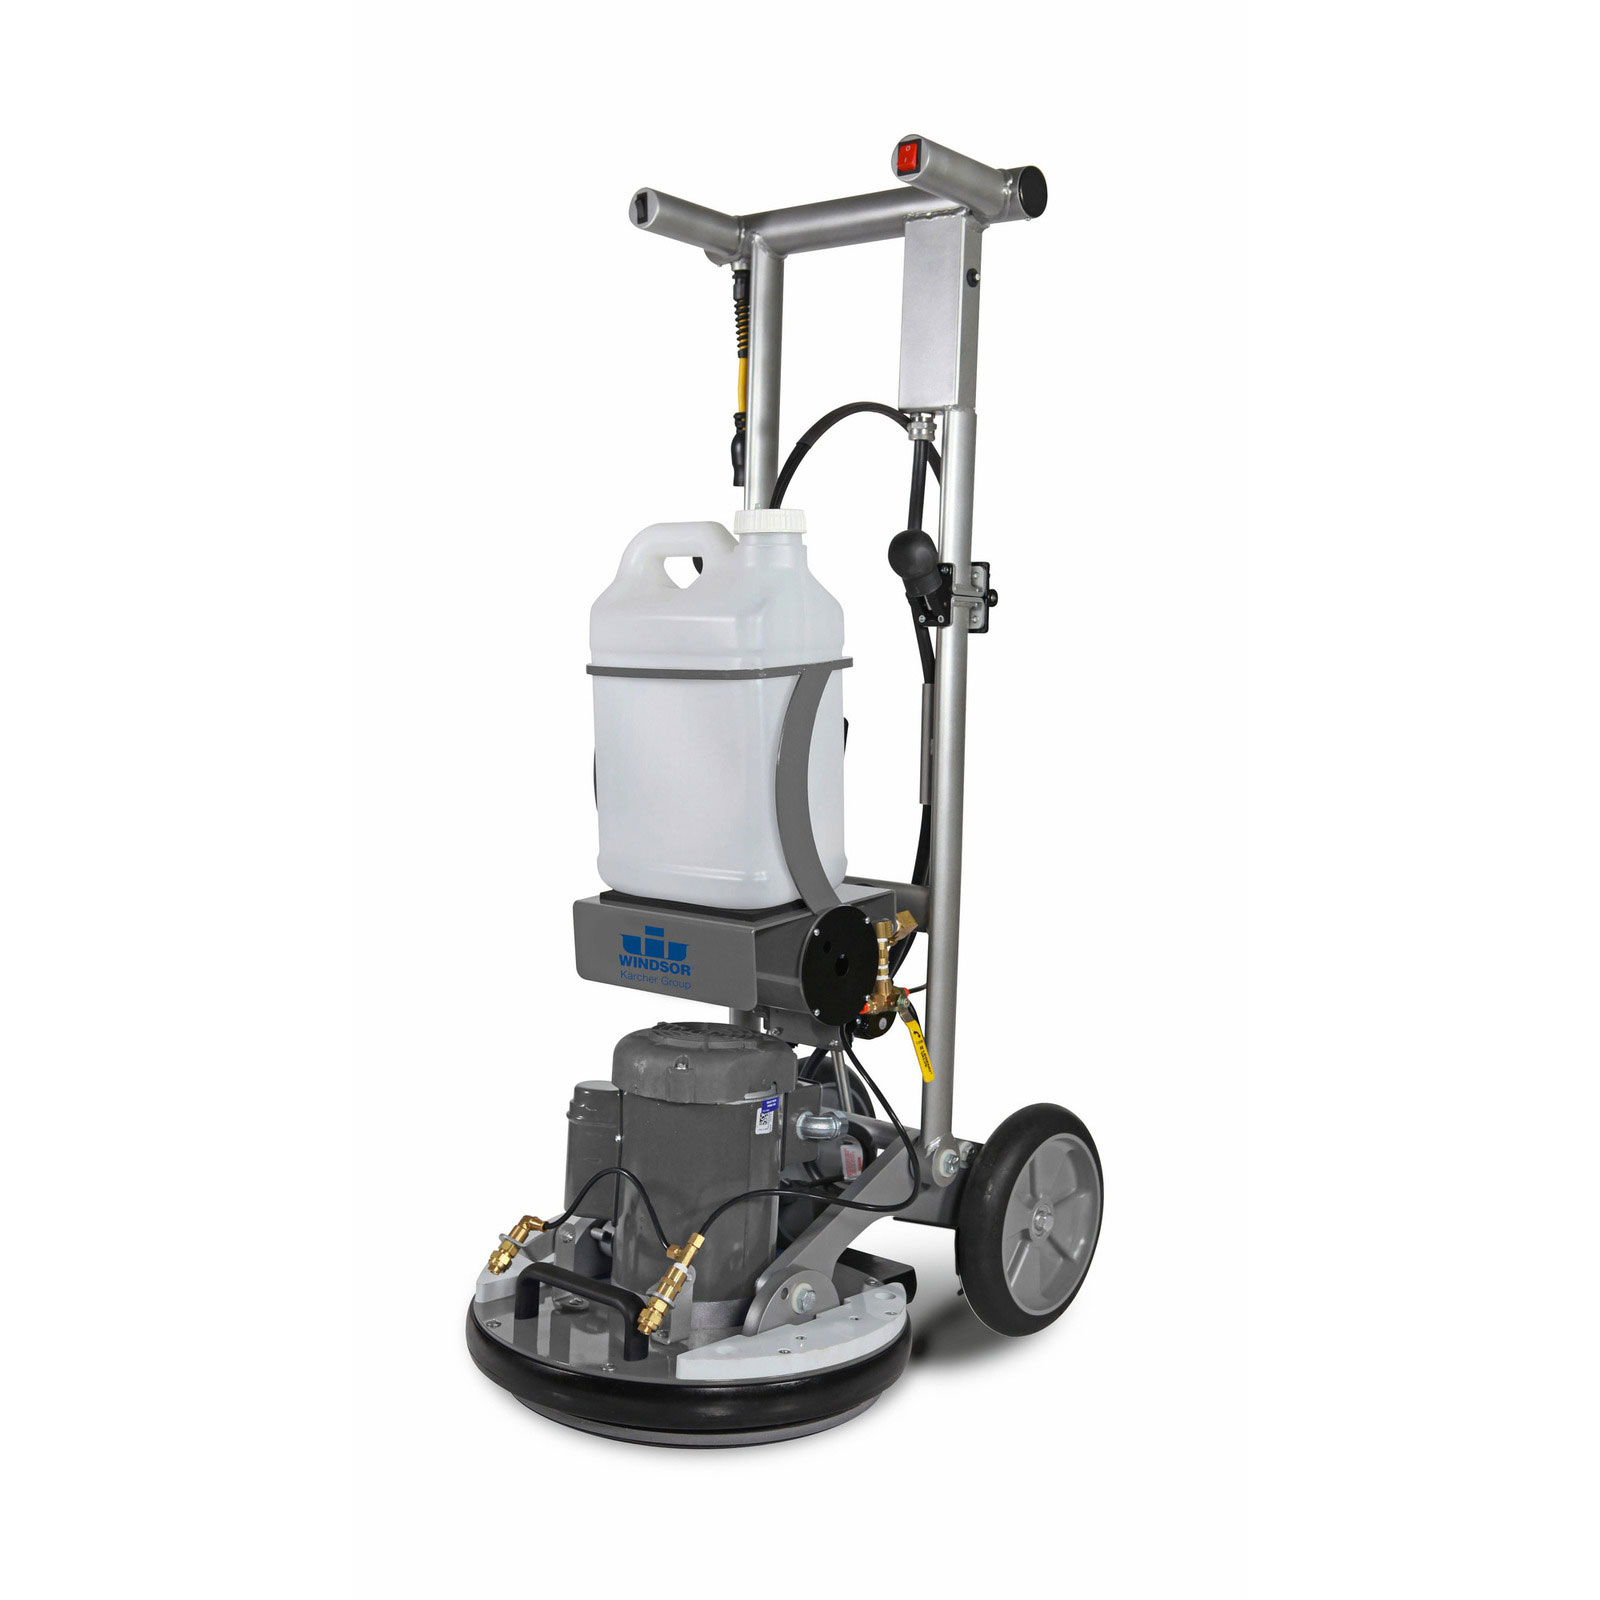 Windsor 1.005-293.0 Karcher BDS 43/Duo C 9.841-231.0 Taz 9.841-236.0 Orbital Scrubber 17 Inch Floor Machine With Tank FREE Shipping No Weight Set